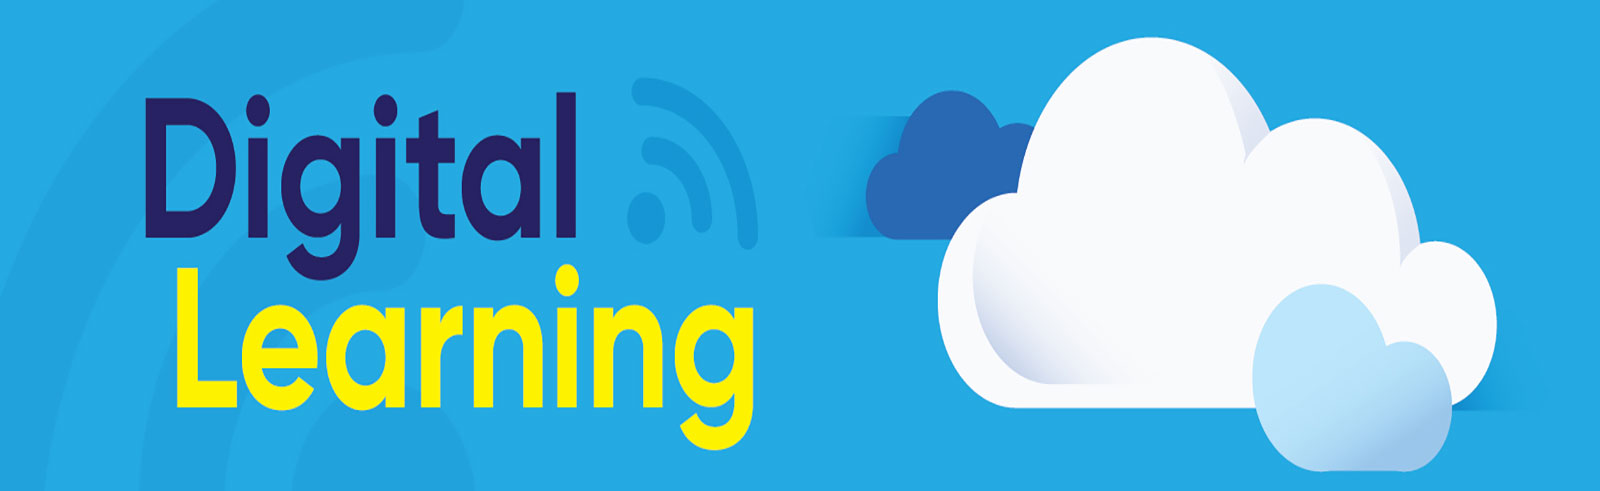 Digital Learning text on light blue background with clouds